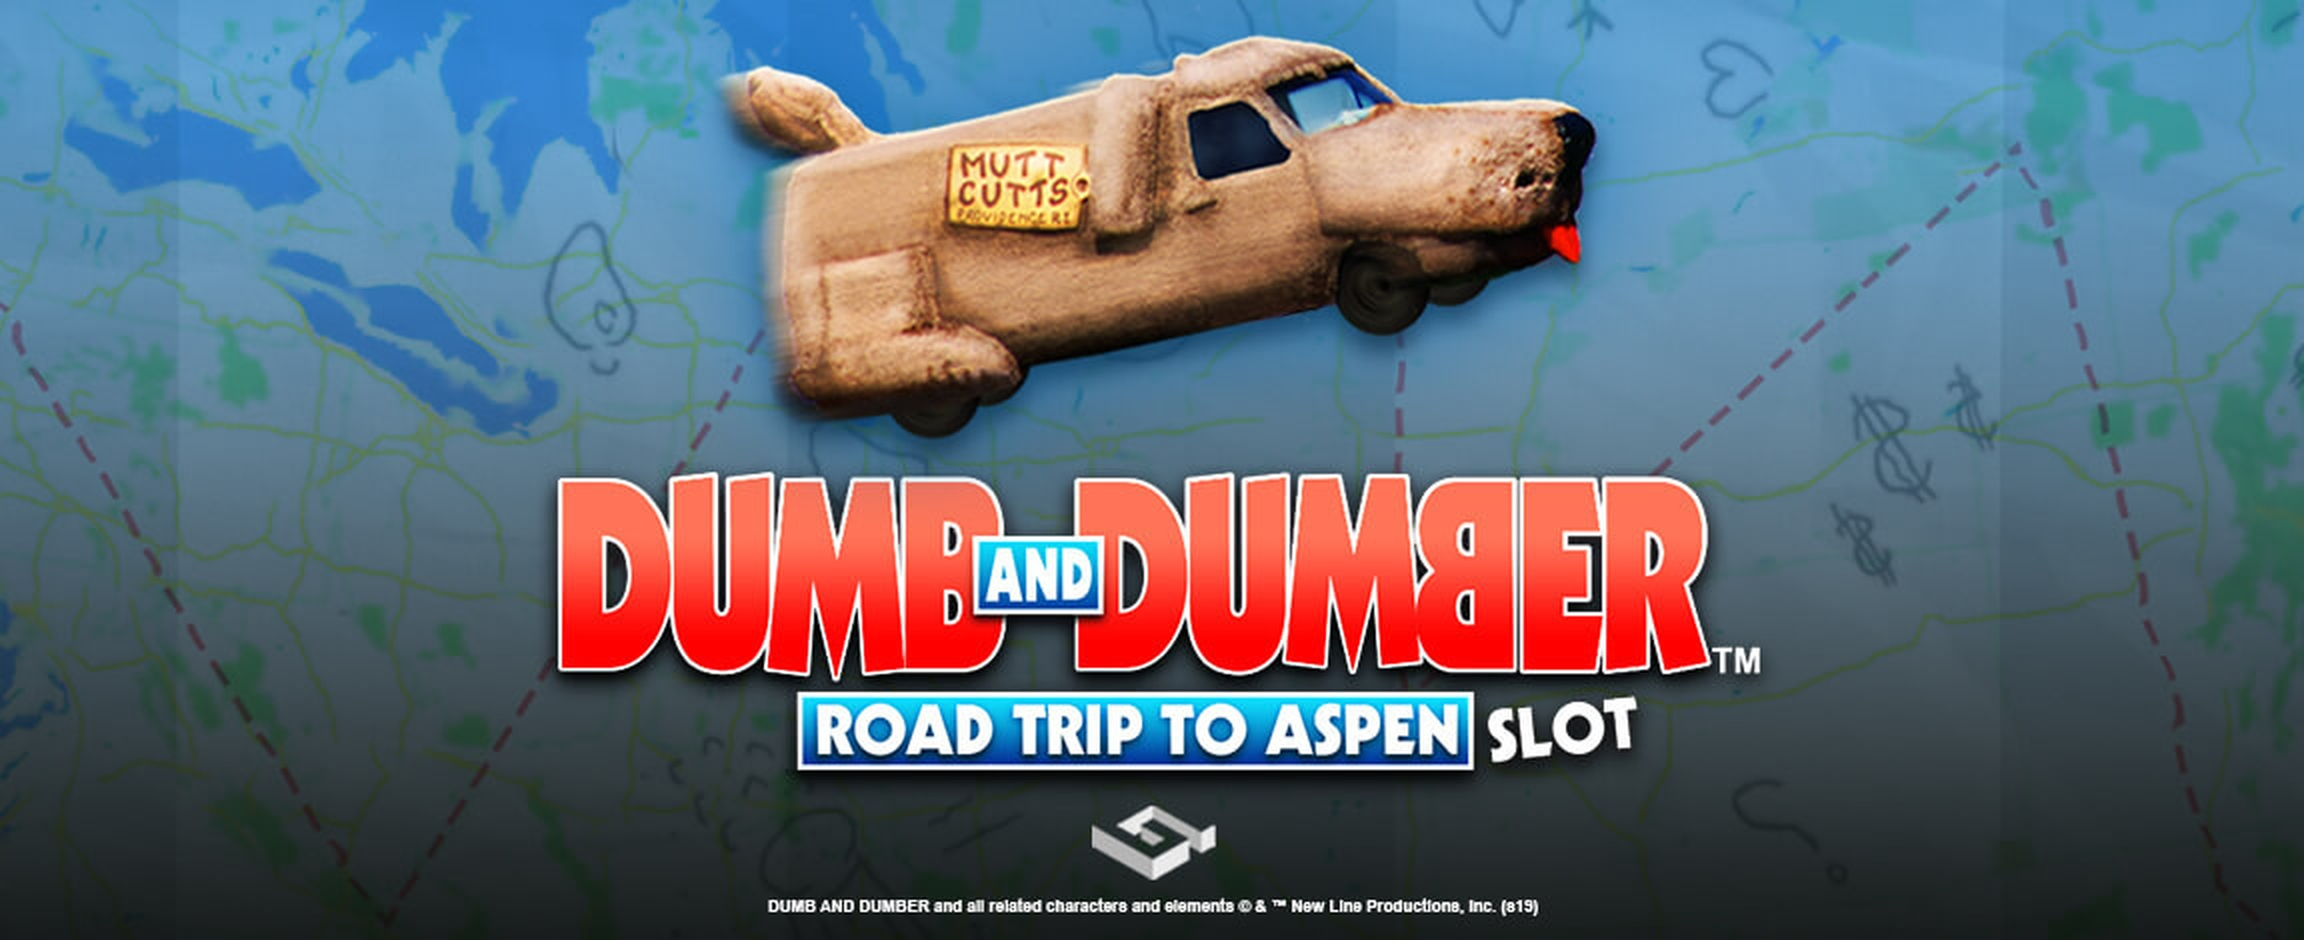 Se Dumb and Dumber Online Slot Demo Game, Endemol Games